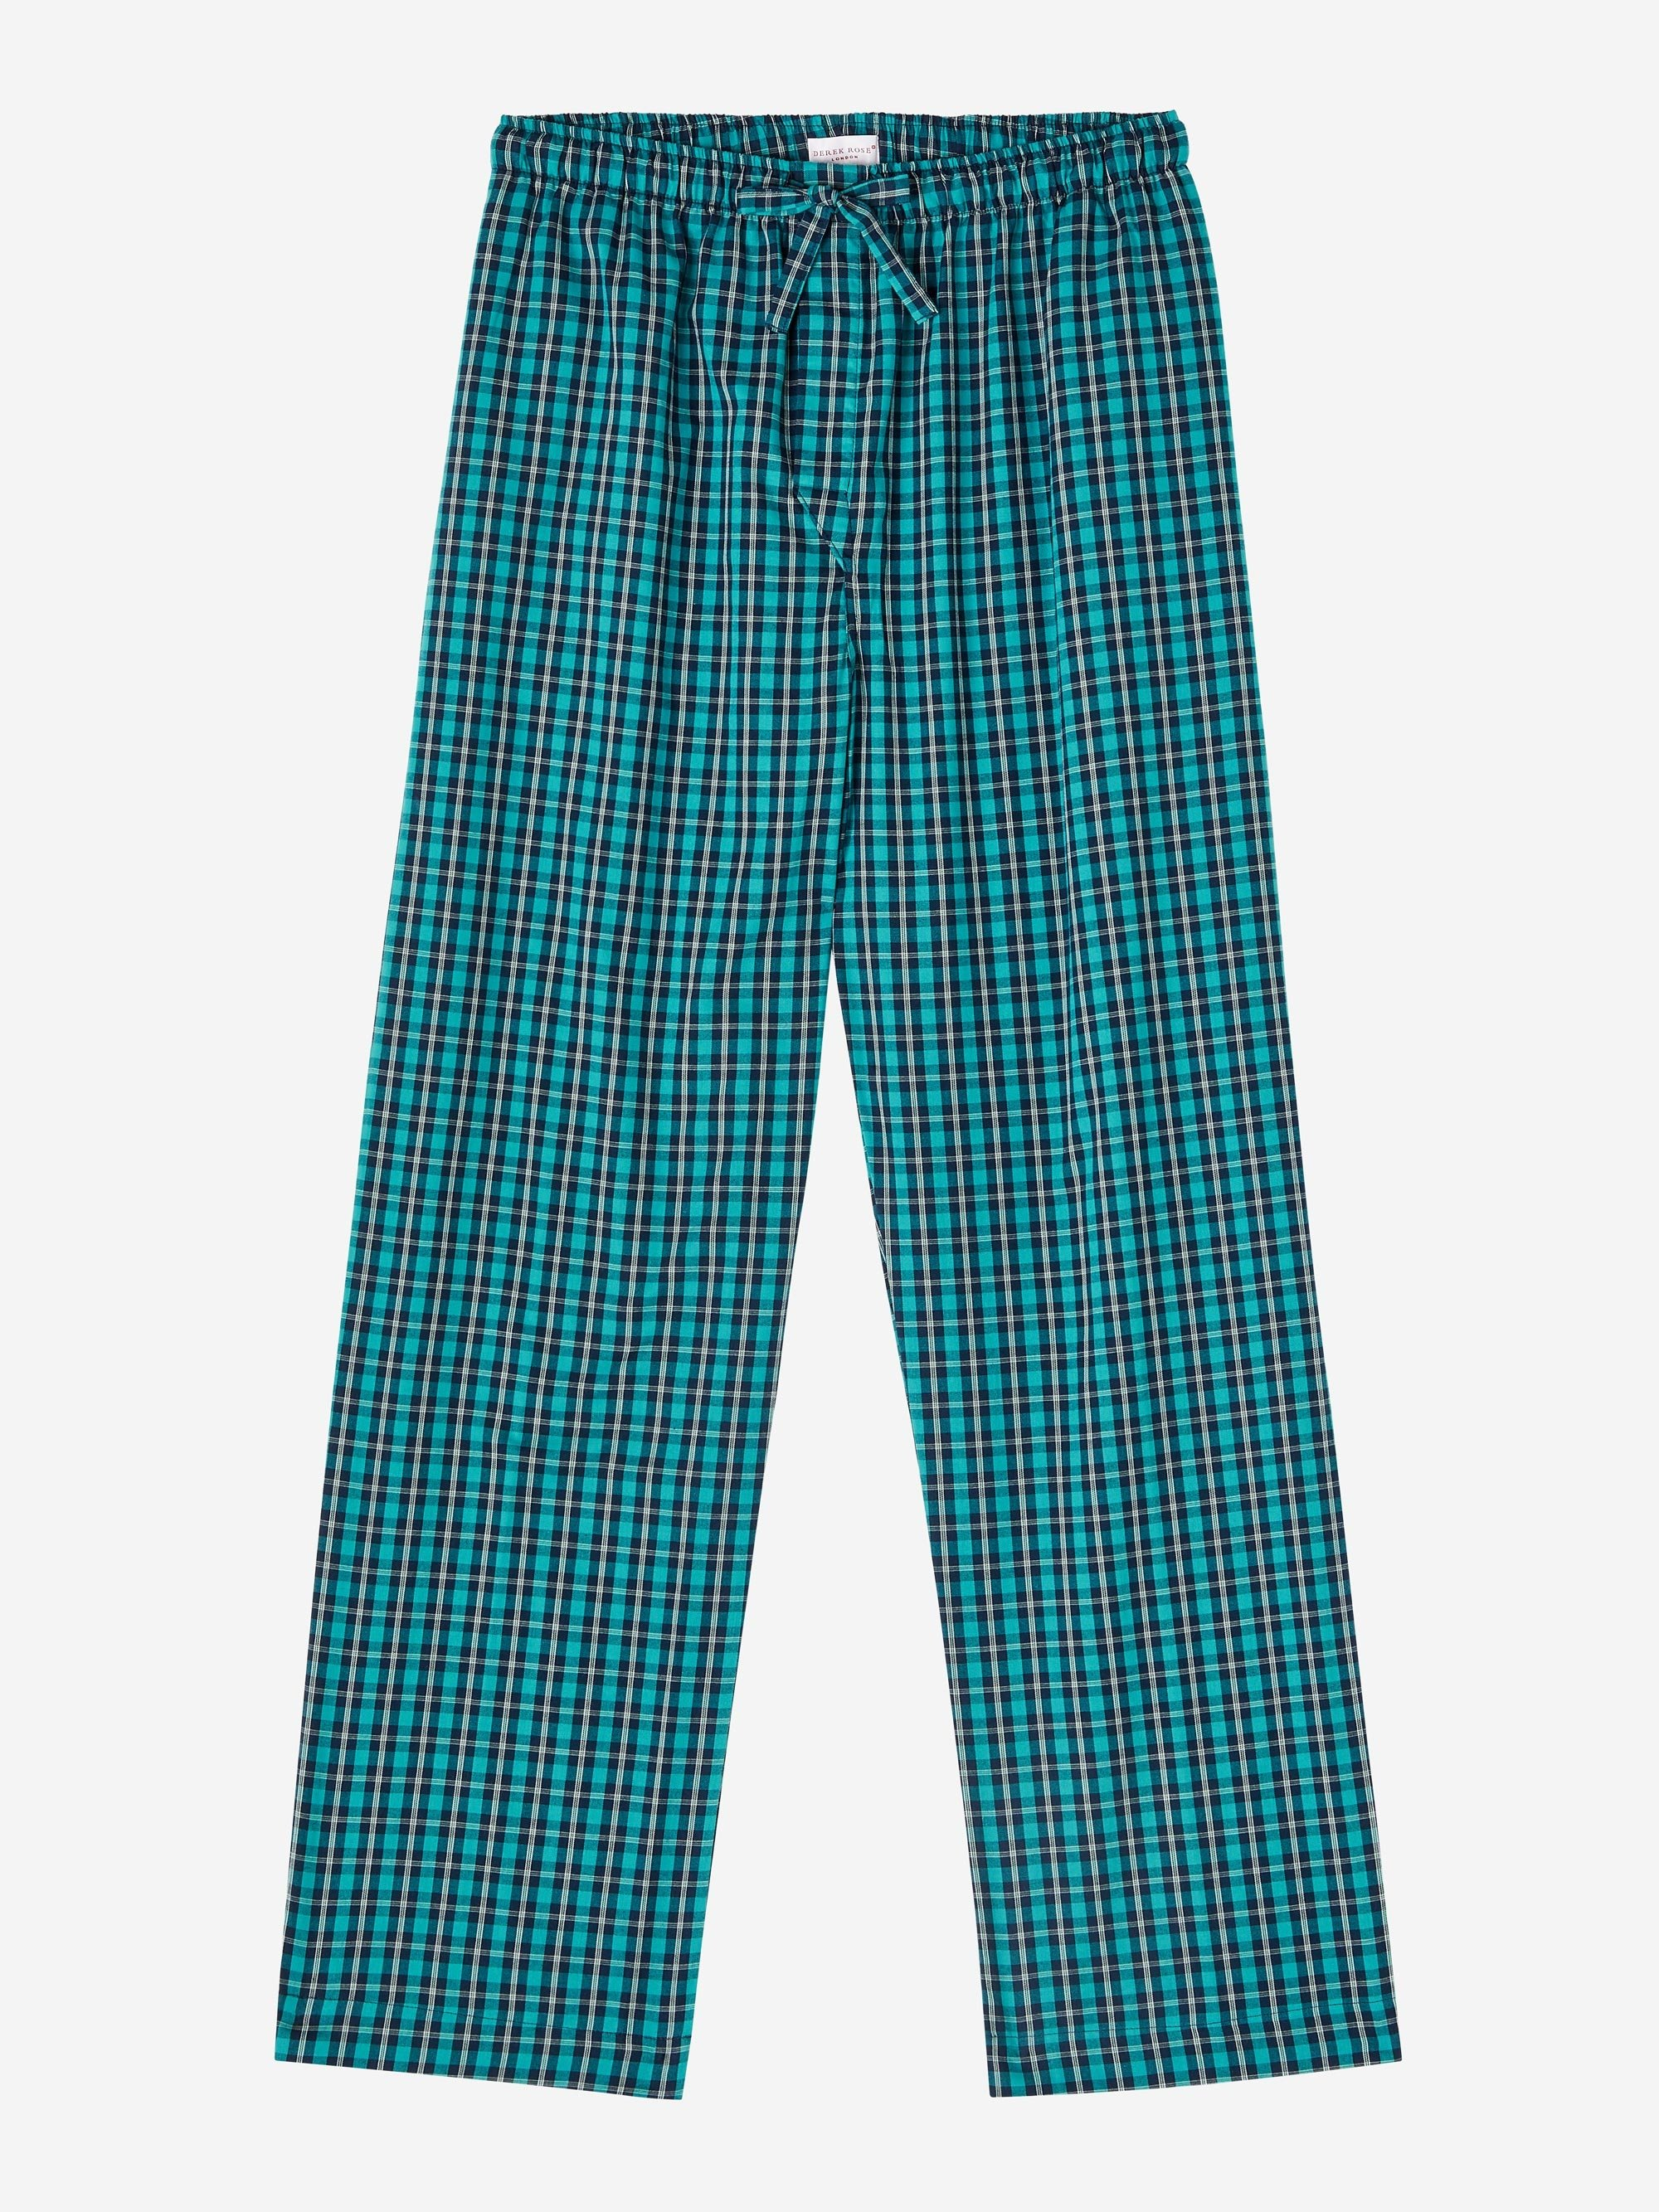 Men's Lounge Trousers Braemar 45 Brushed Cotton Check Multi